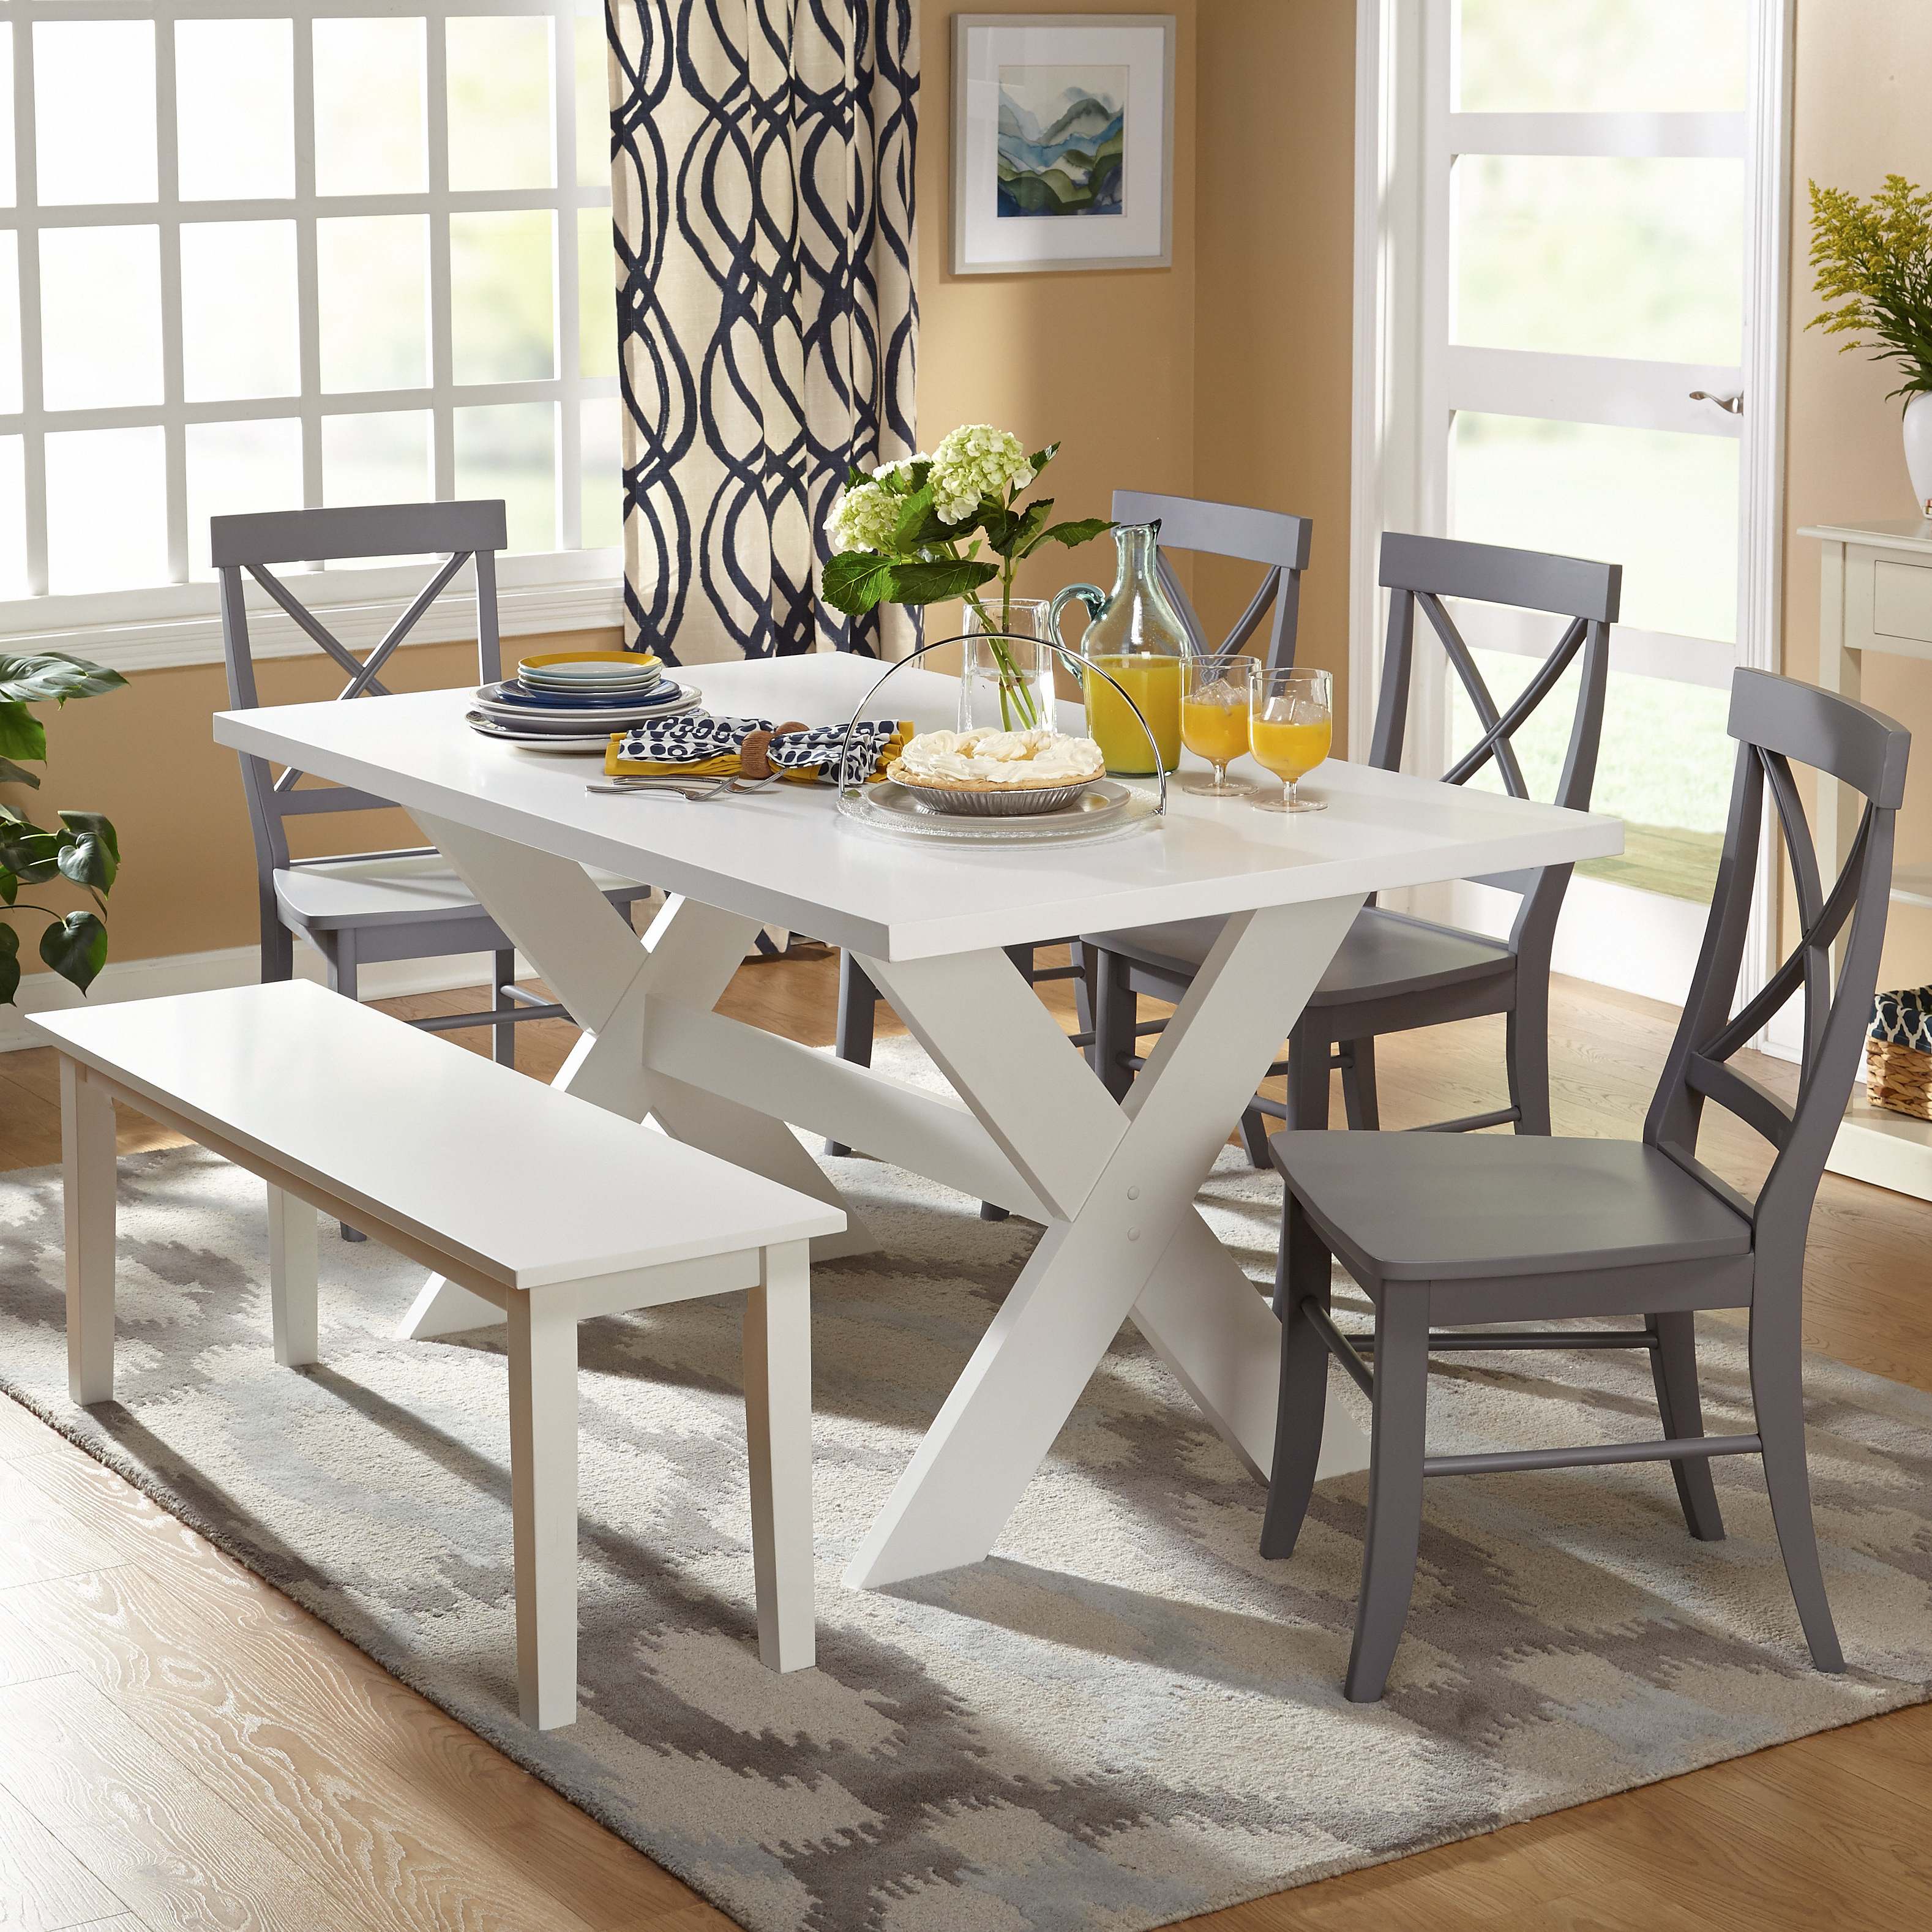 Osterman 6 Piece Extendable Dining Sets (Set Of 6) Intended For Latest Farmhouse & Rustic 6 Piece Dining Sets (View 10 of 20)